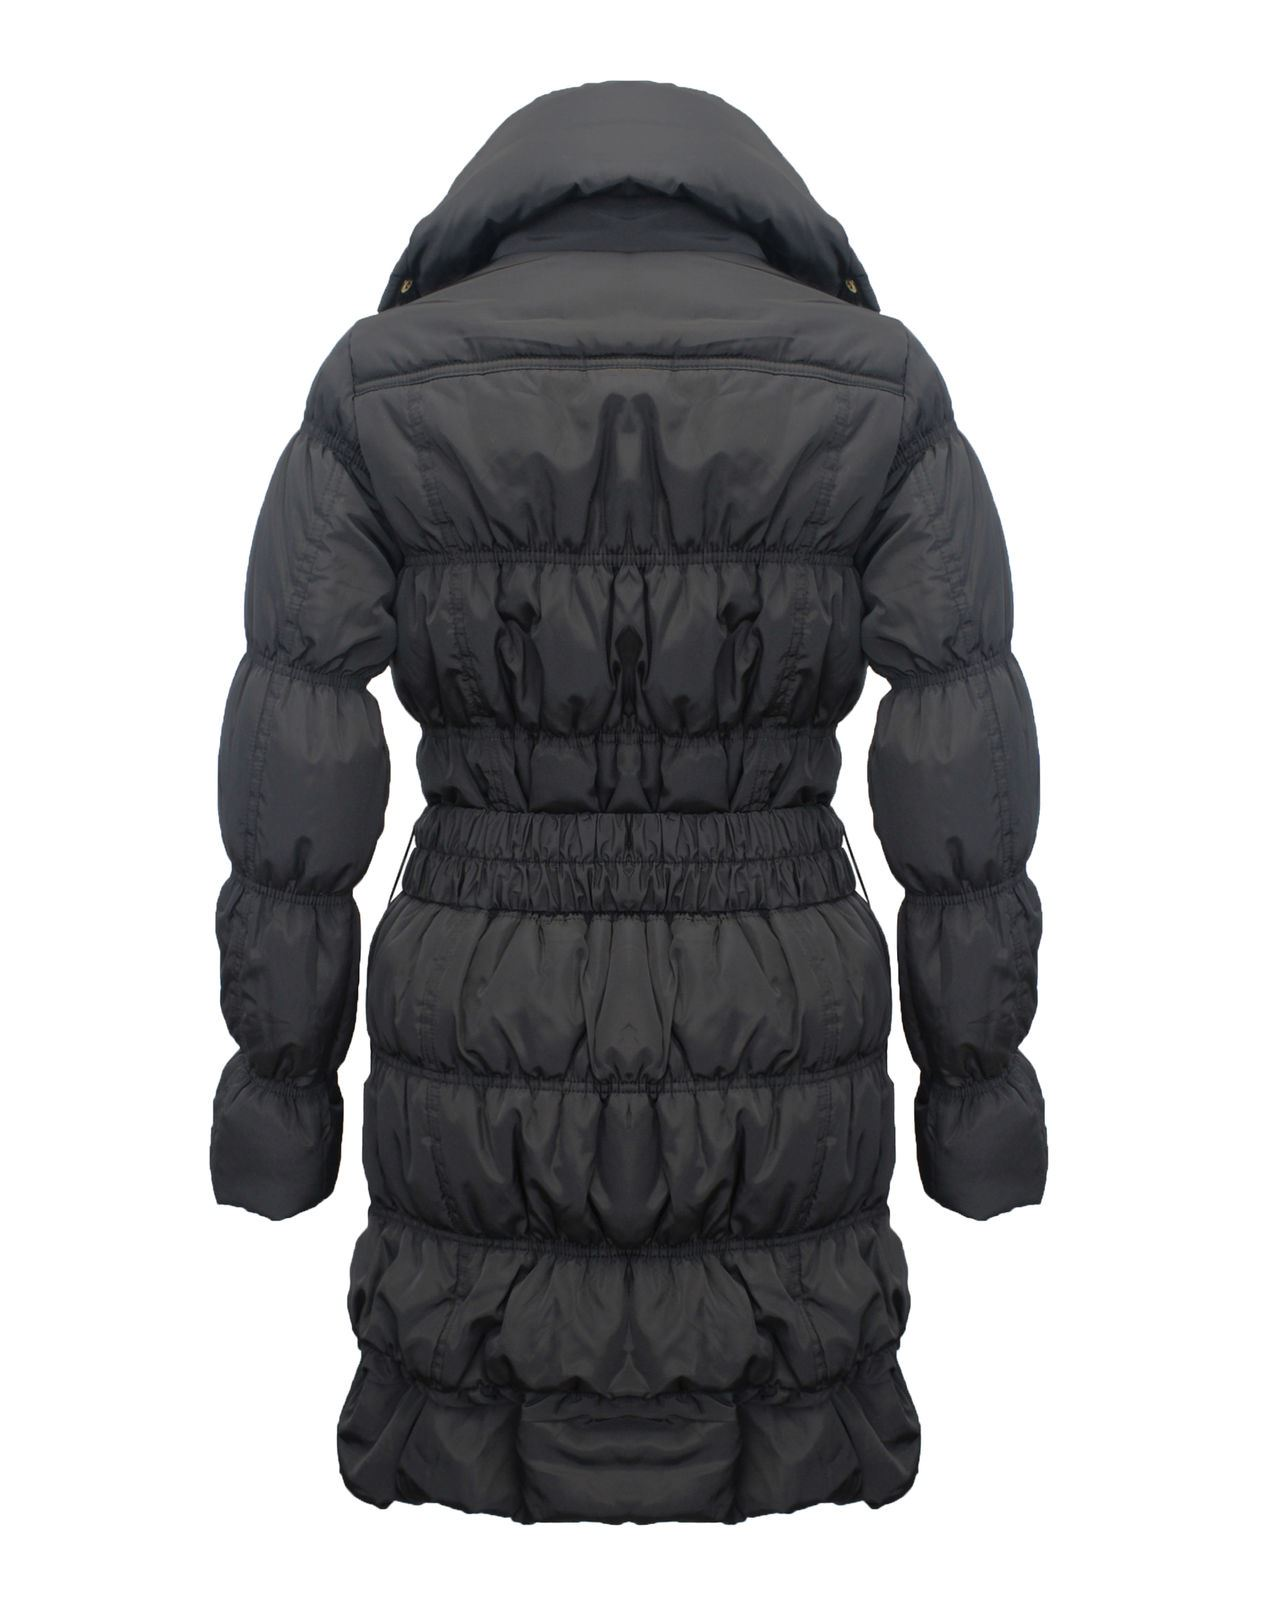 Ladies-Women-High-Neck-Collar-Quilted-Padded-Waist-Belt-Puffer-Coat-Jacket-8-16